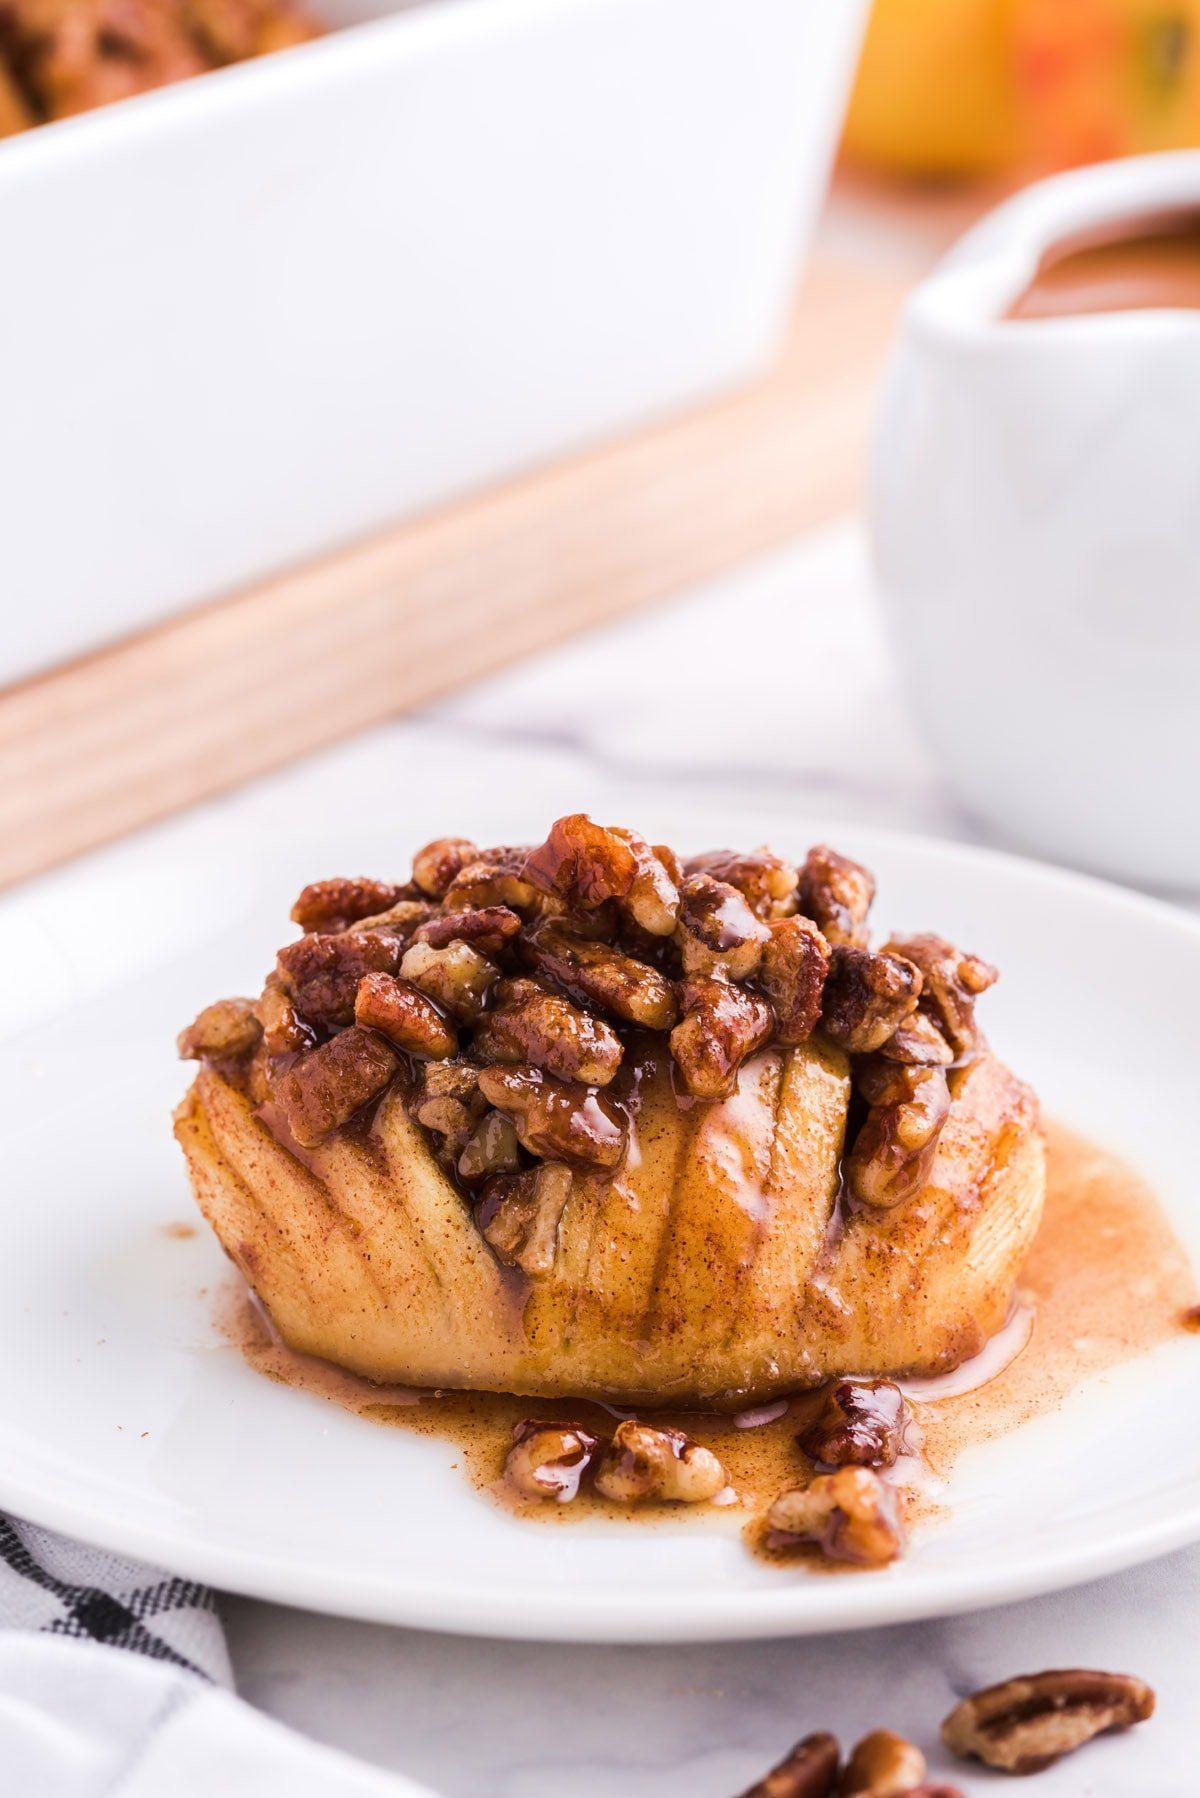 hasselback apples on a plate